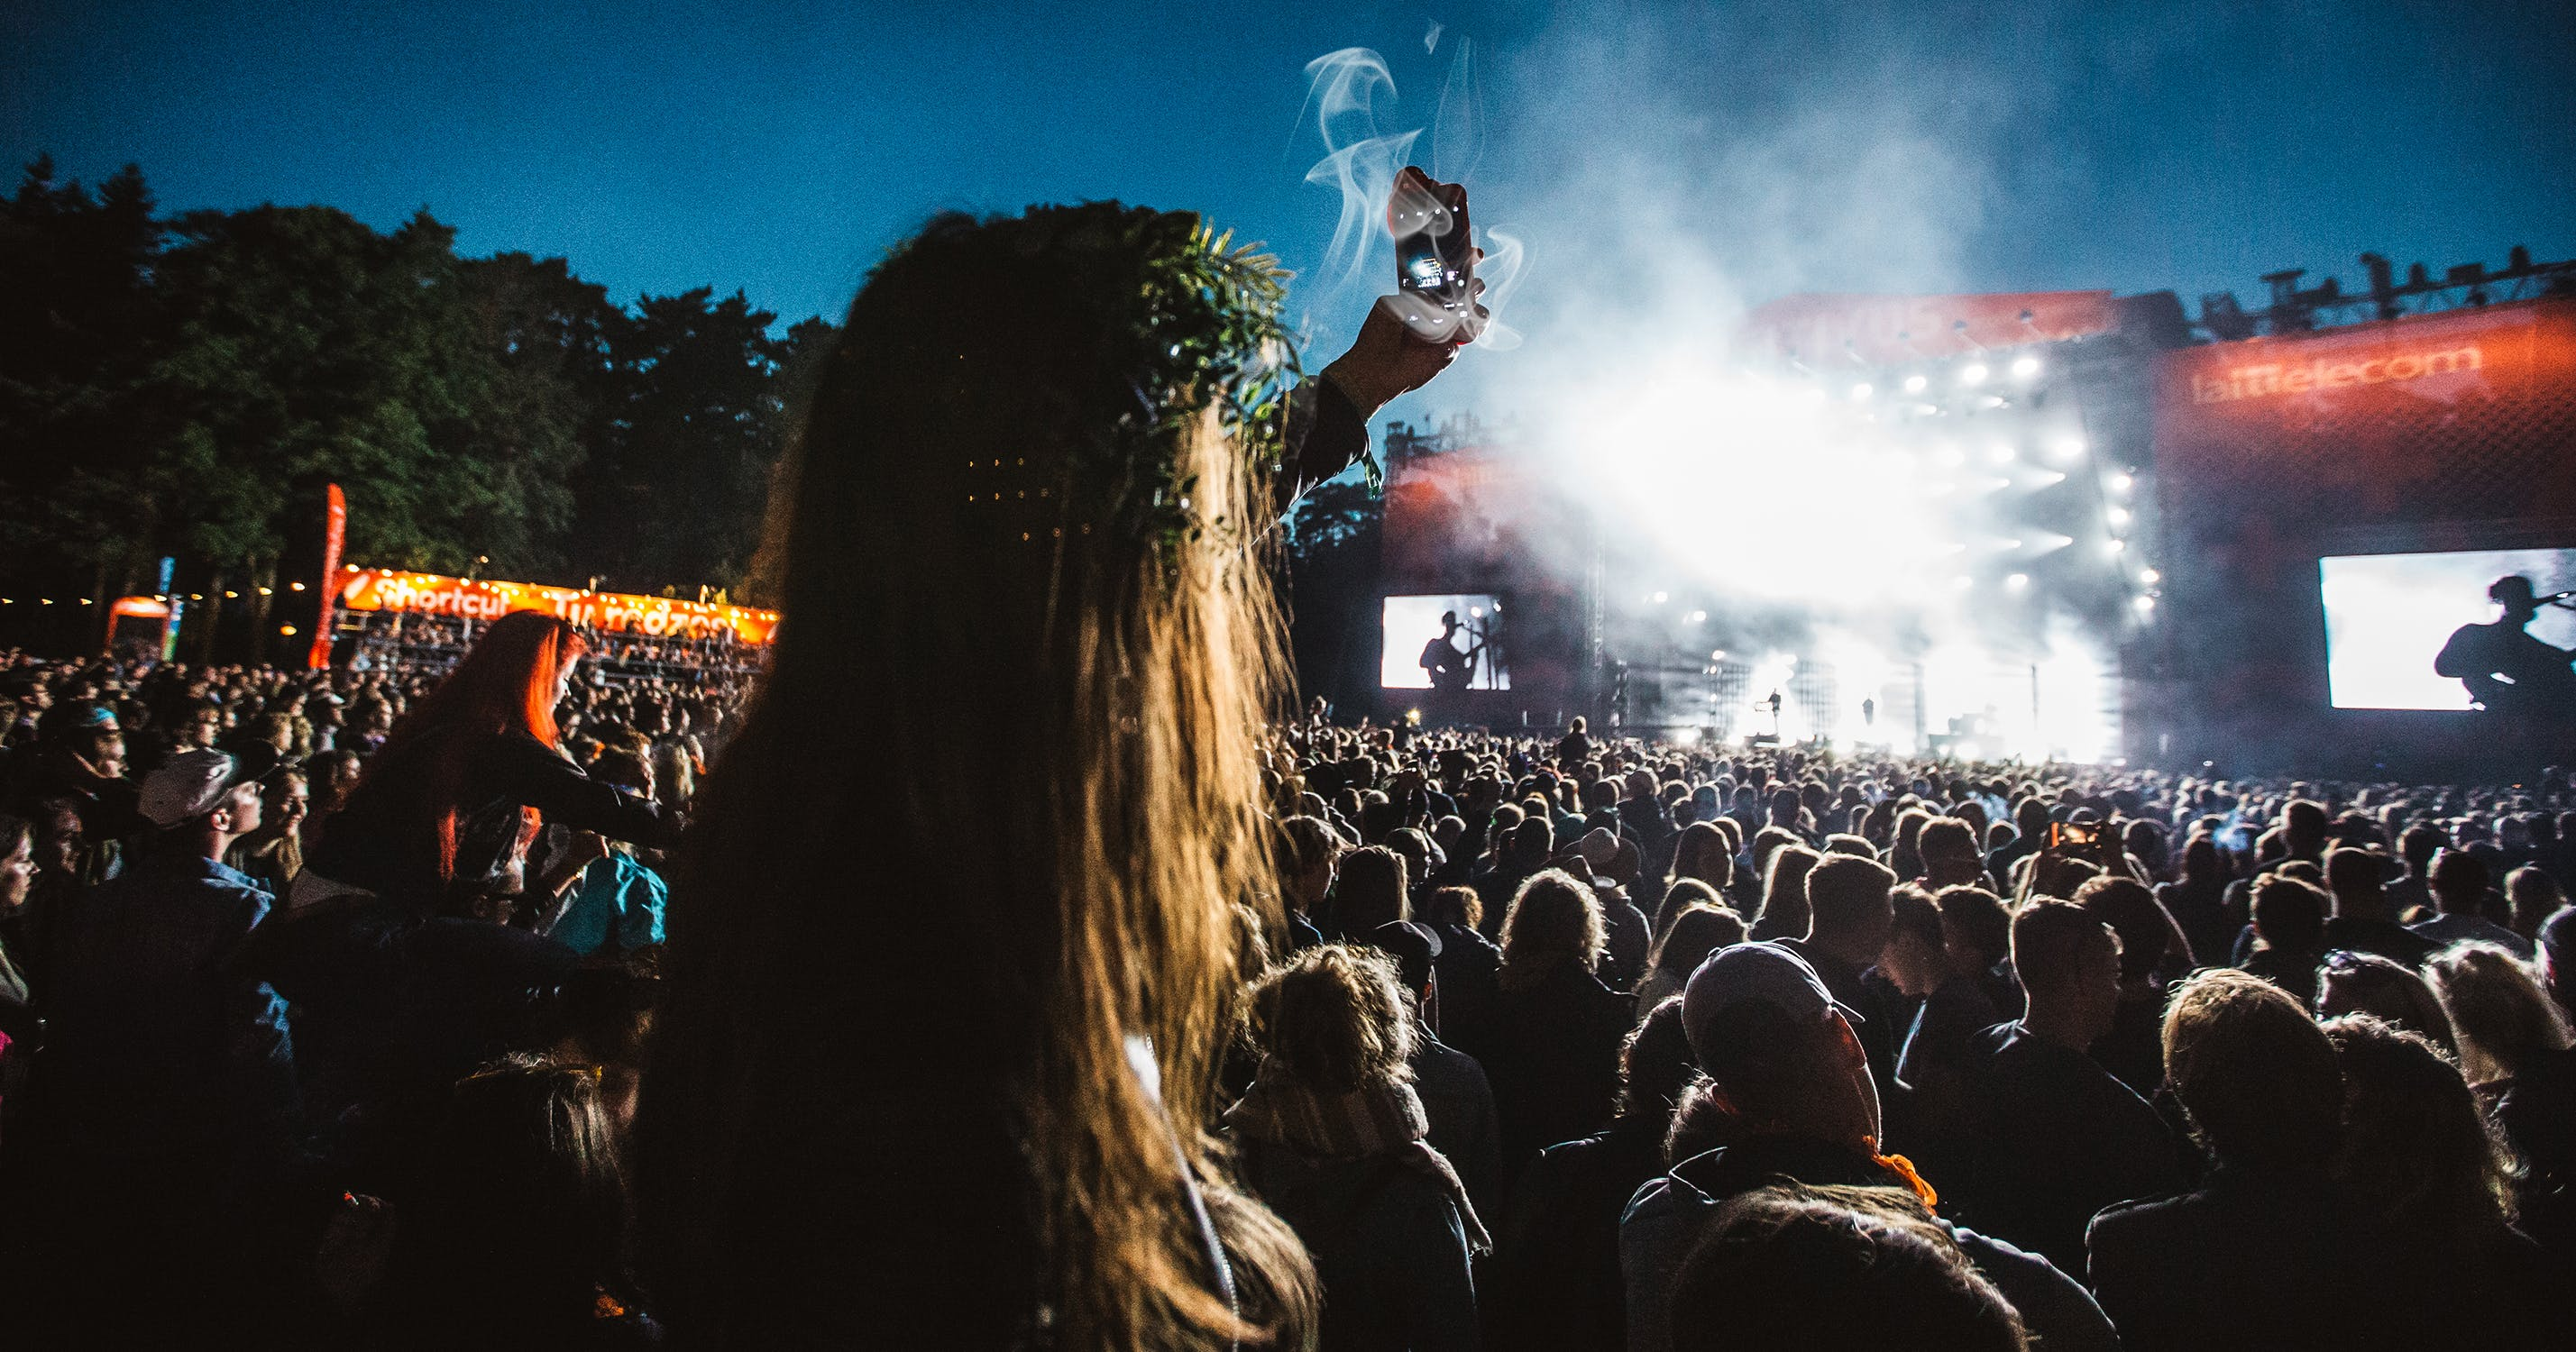 10 Reasons Why Pipes Are The Best Way To Get High At A Concert